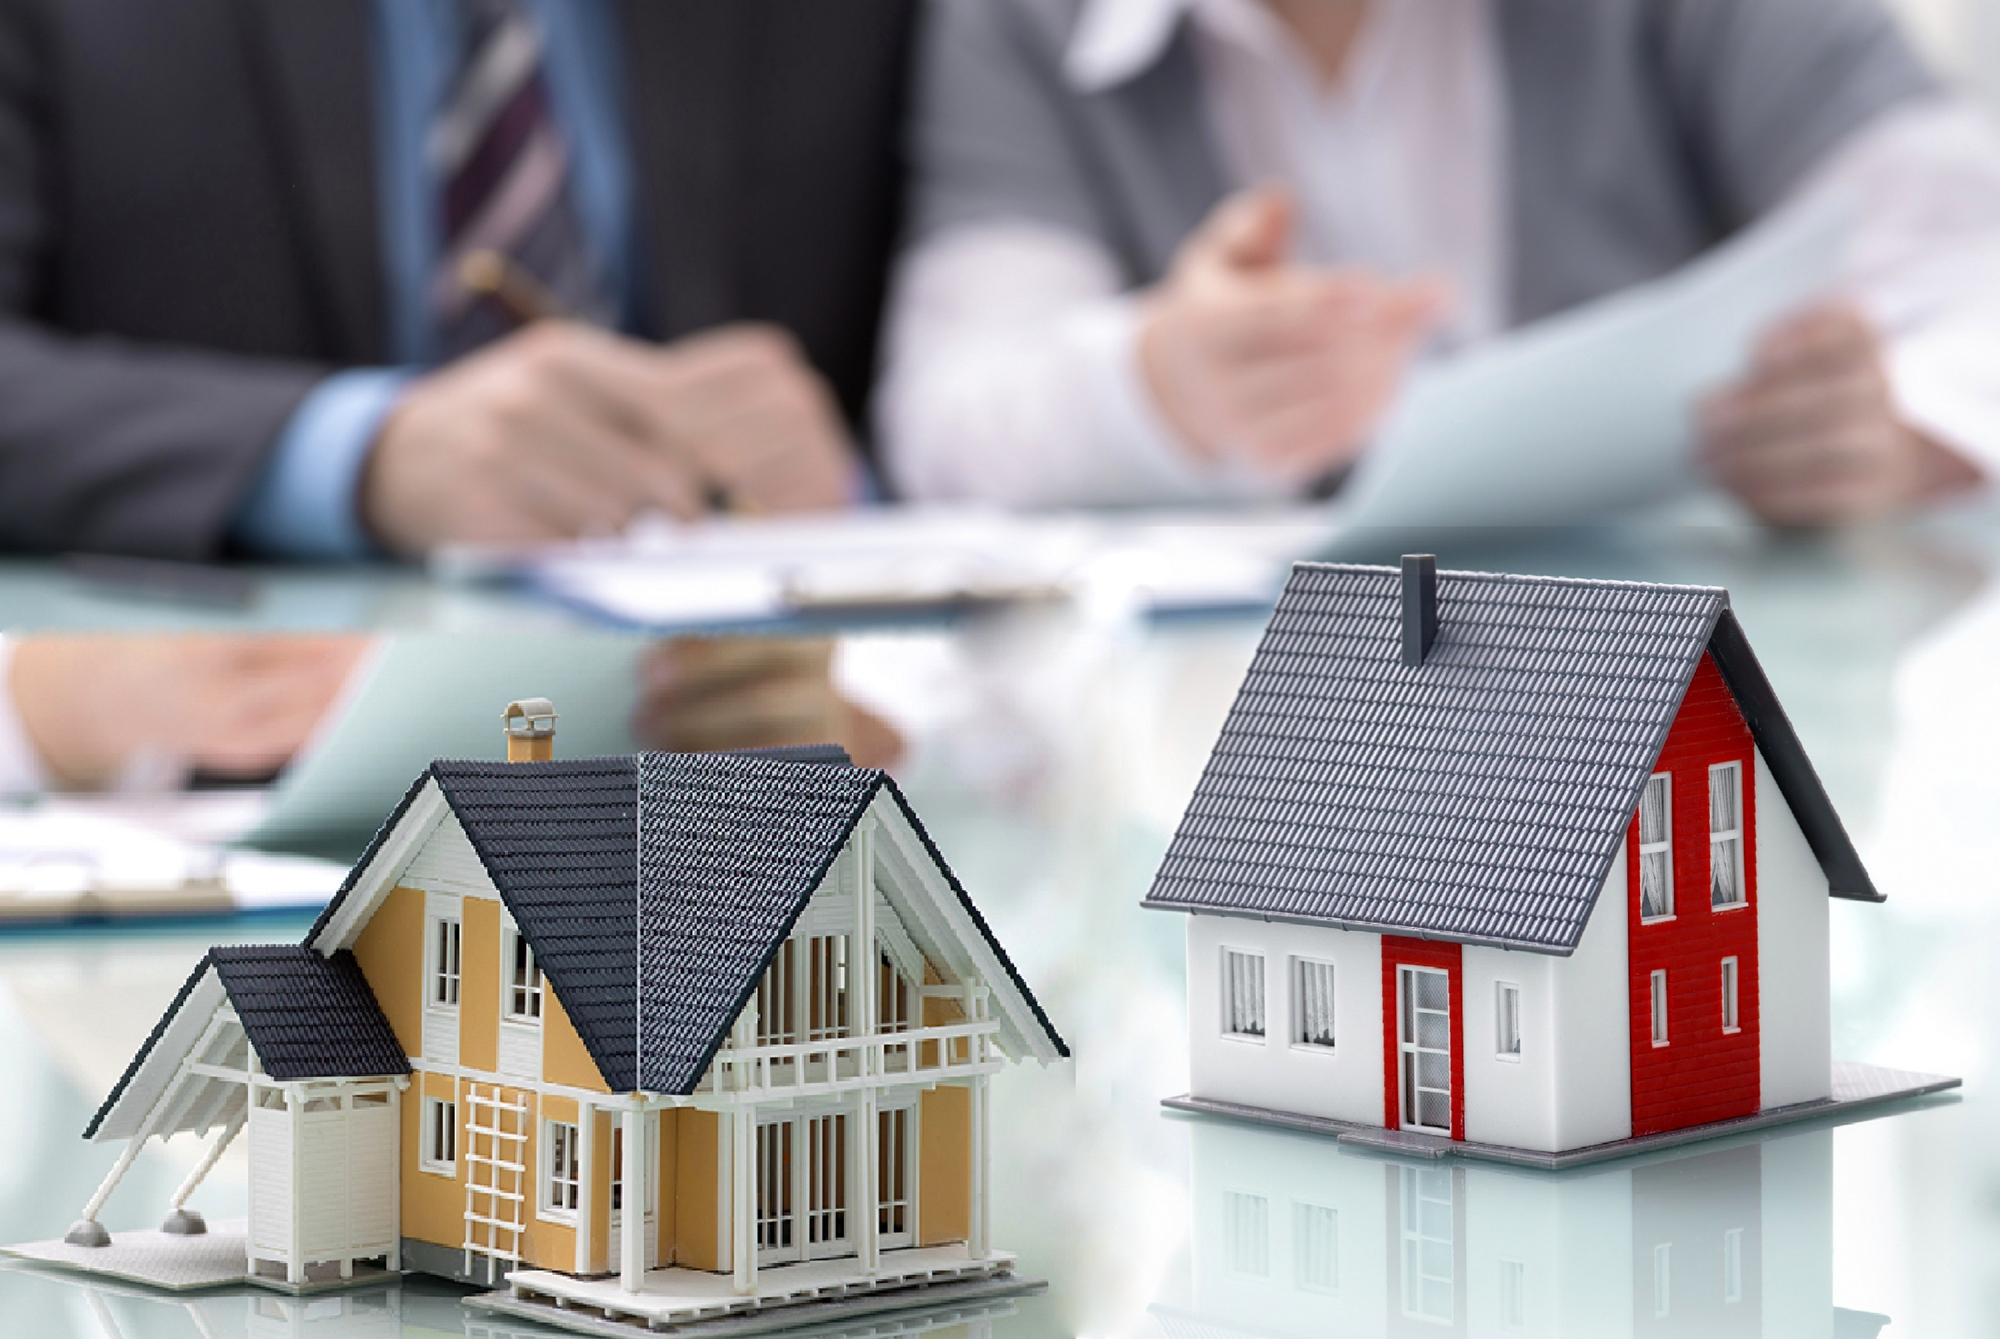 How To Passively Build Your Real Estate Portfolio